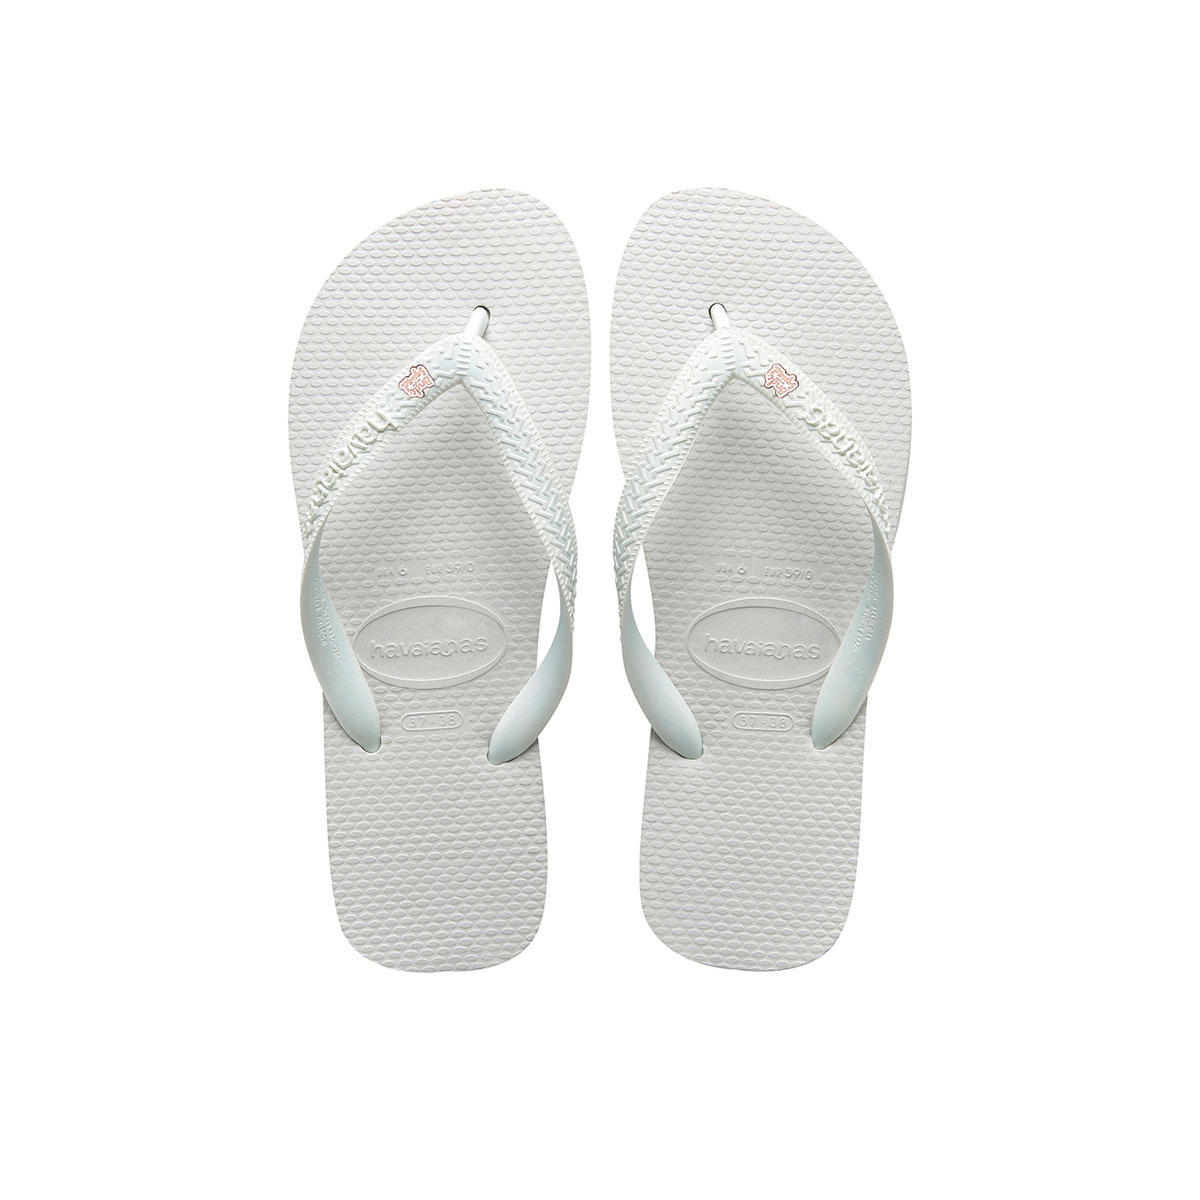 Bride Squad Rose Gold Charm Havaianas Top White Wedding Gift